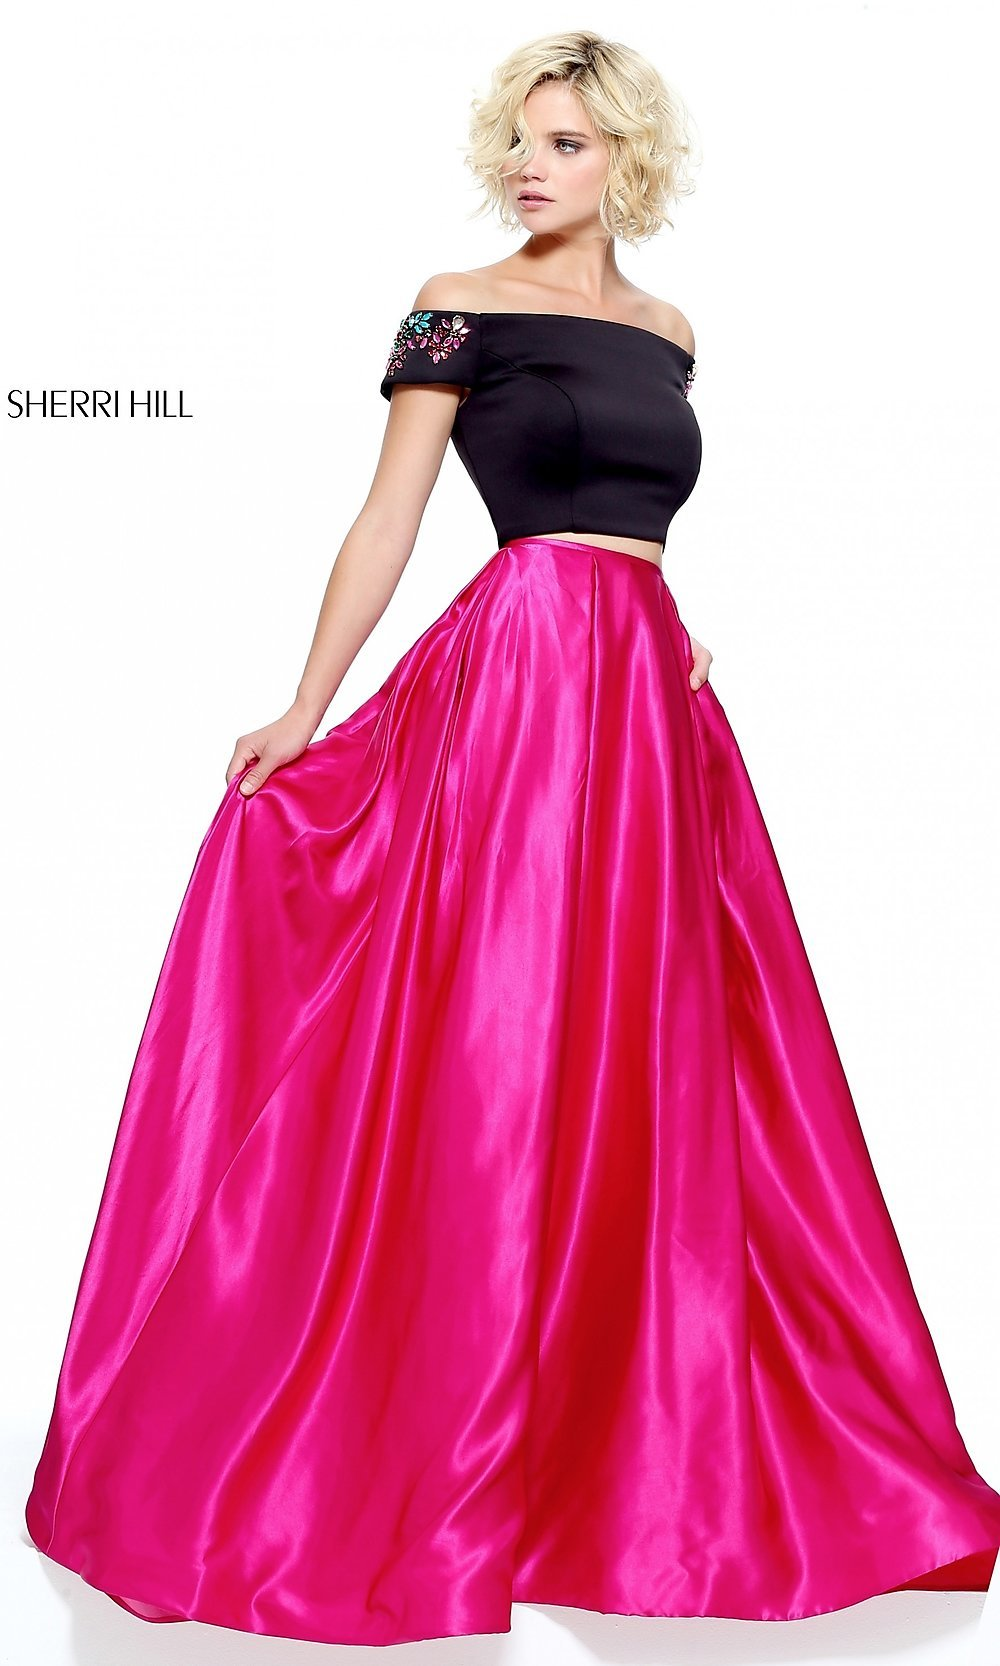 Prom dress stores in denver vosoi neon prom dresses hot pink prom dresses promgirl ombrellifo Choice Image